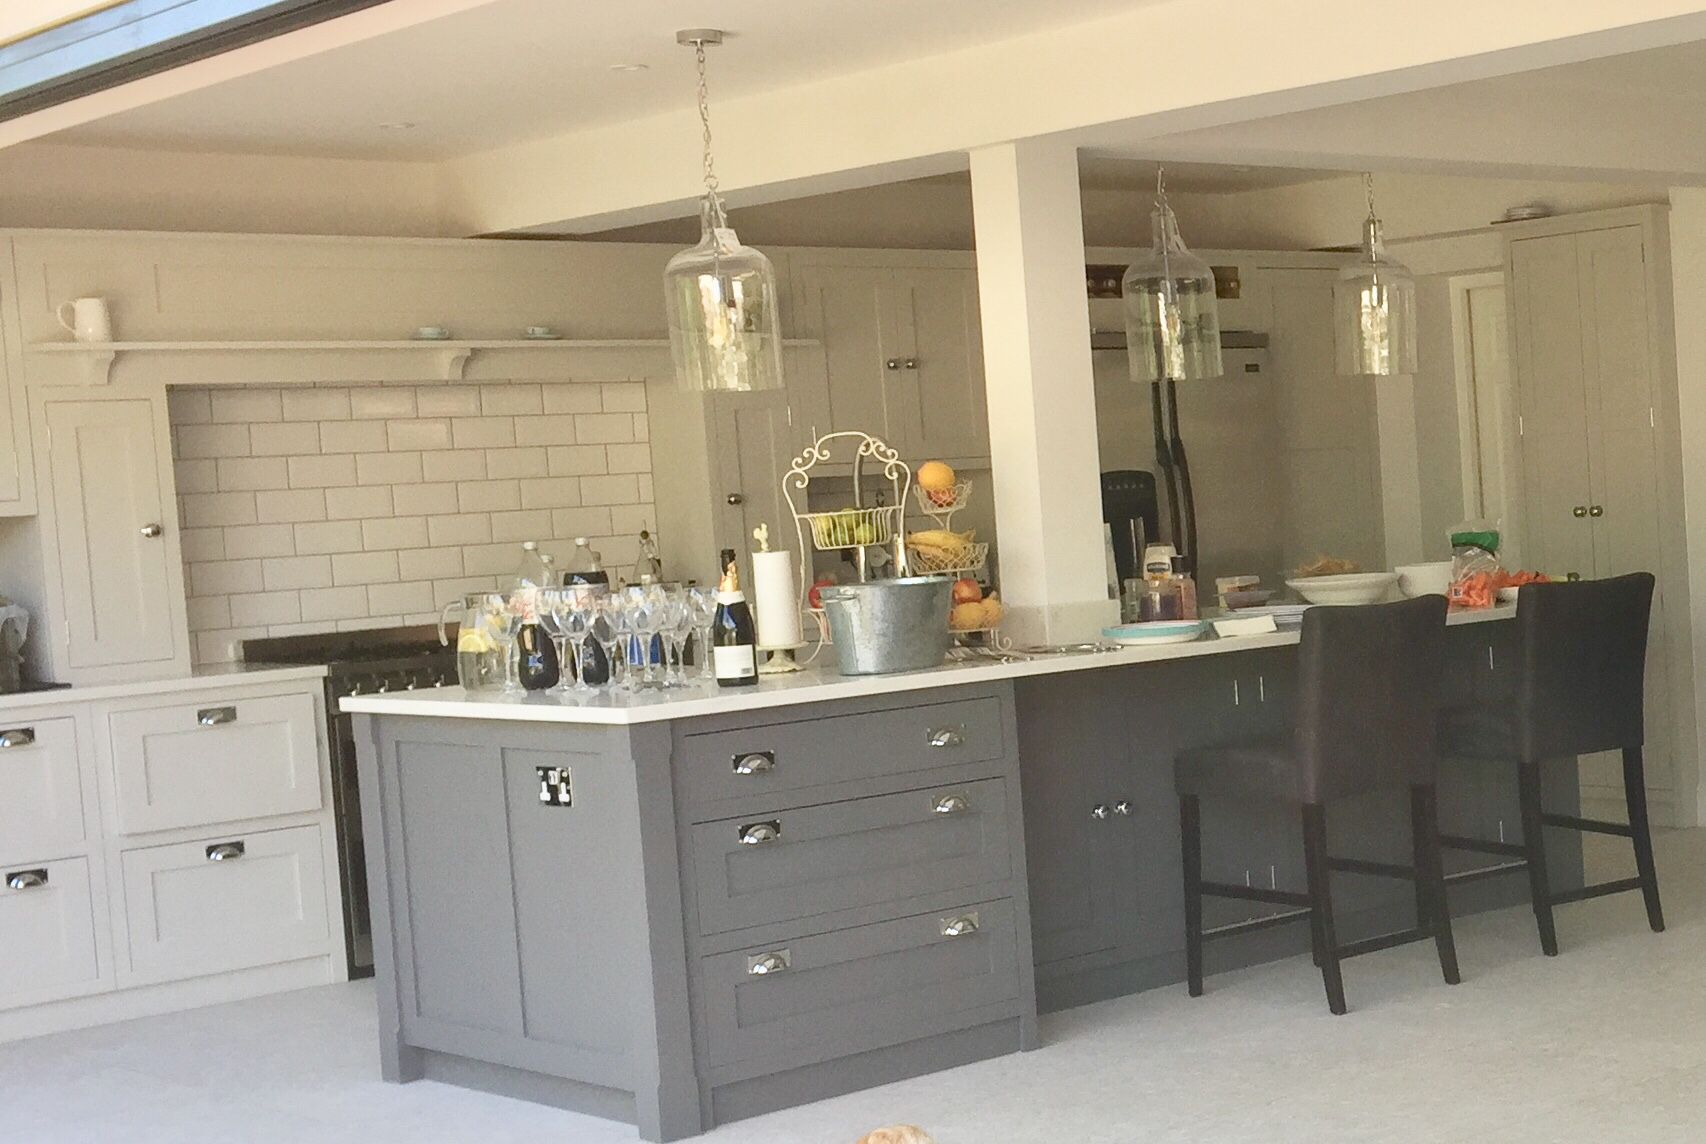 I Hand Painted My New Kitchen From Handmade Kitchens Of Christchurch Using Autentico Versante Matt Paint Fully Wa Handmade Kitchens New Kitchen Kitchen Paint